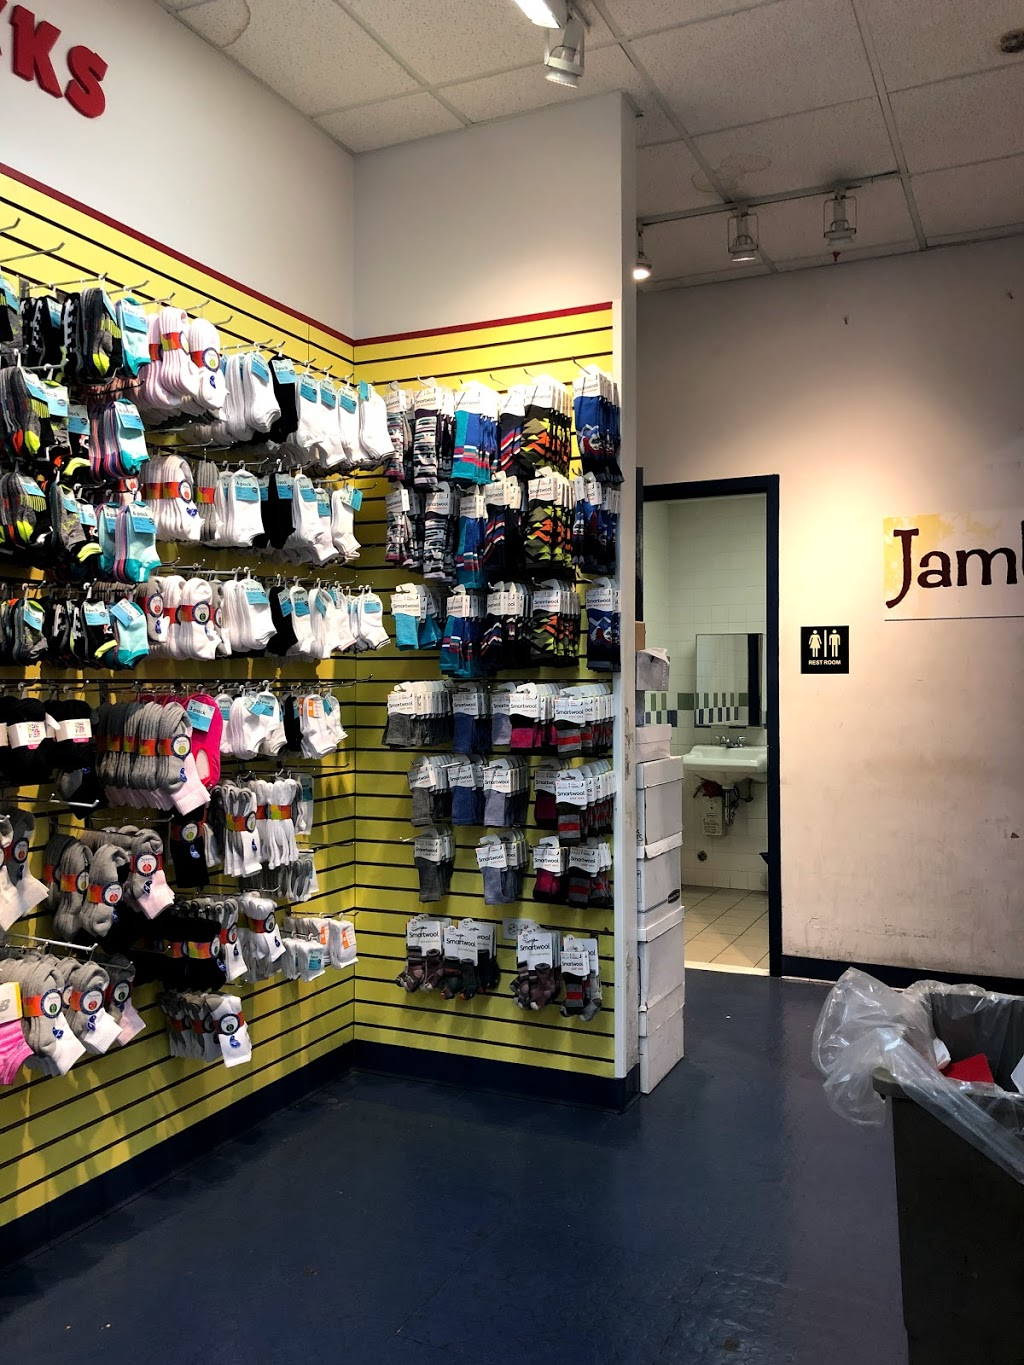 Harrys Shoes for Kids - shoe store  | Photo 8 of 10 | Address: 2315 Broadway, New York, NY 10024, USA | Phone: (855) 642-7797